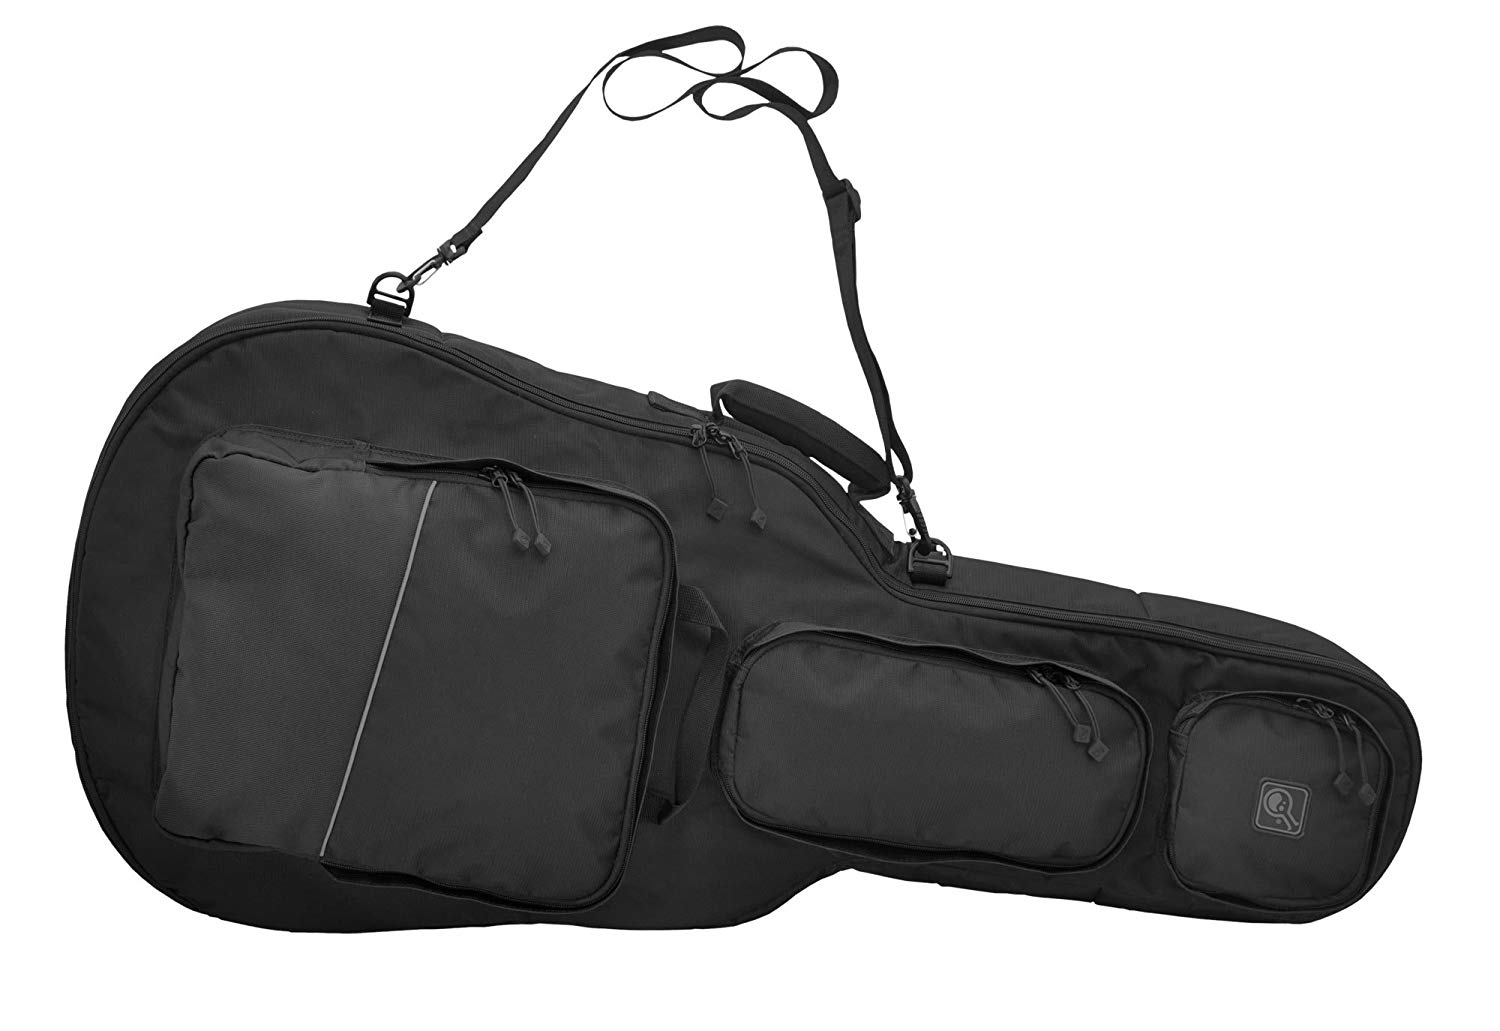 HAZARD 4 Battle Axe Guitar-Shaped Padded Rifle Case